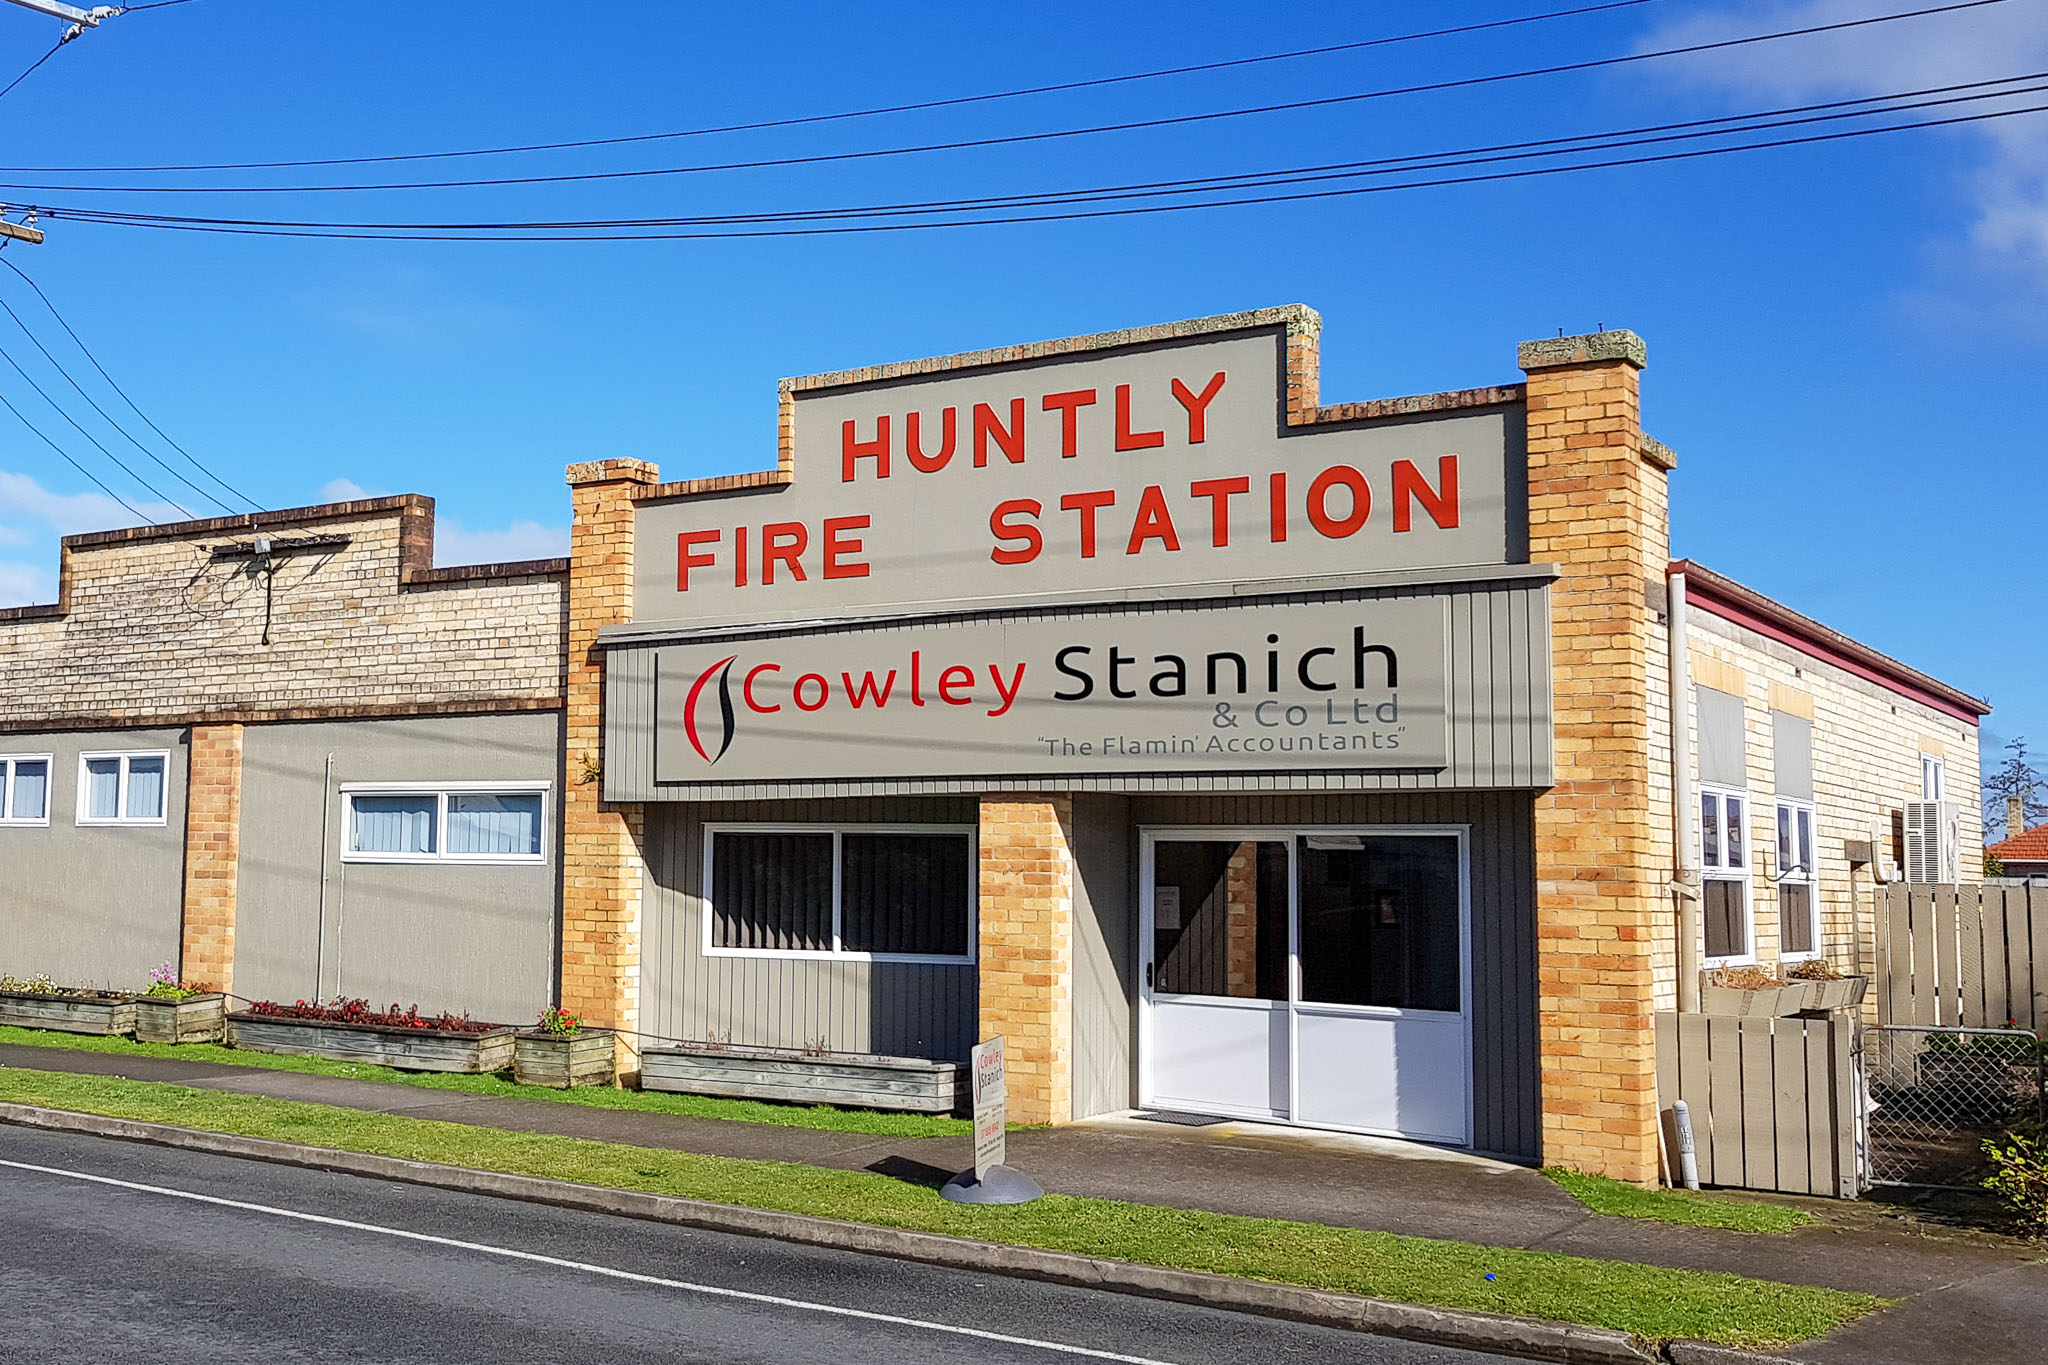 Cowley Stanich & Co Ltd, Huntly Fire Station, 9 Hakanoa Street, Huntly, Waikato. 2018-08-06-Monday